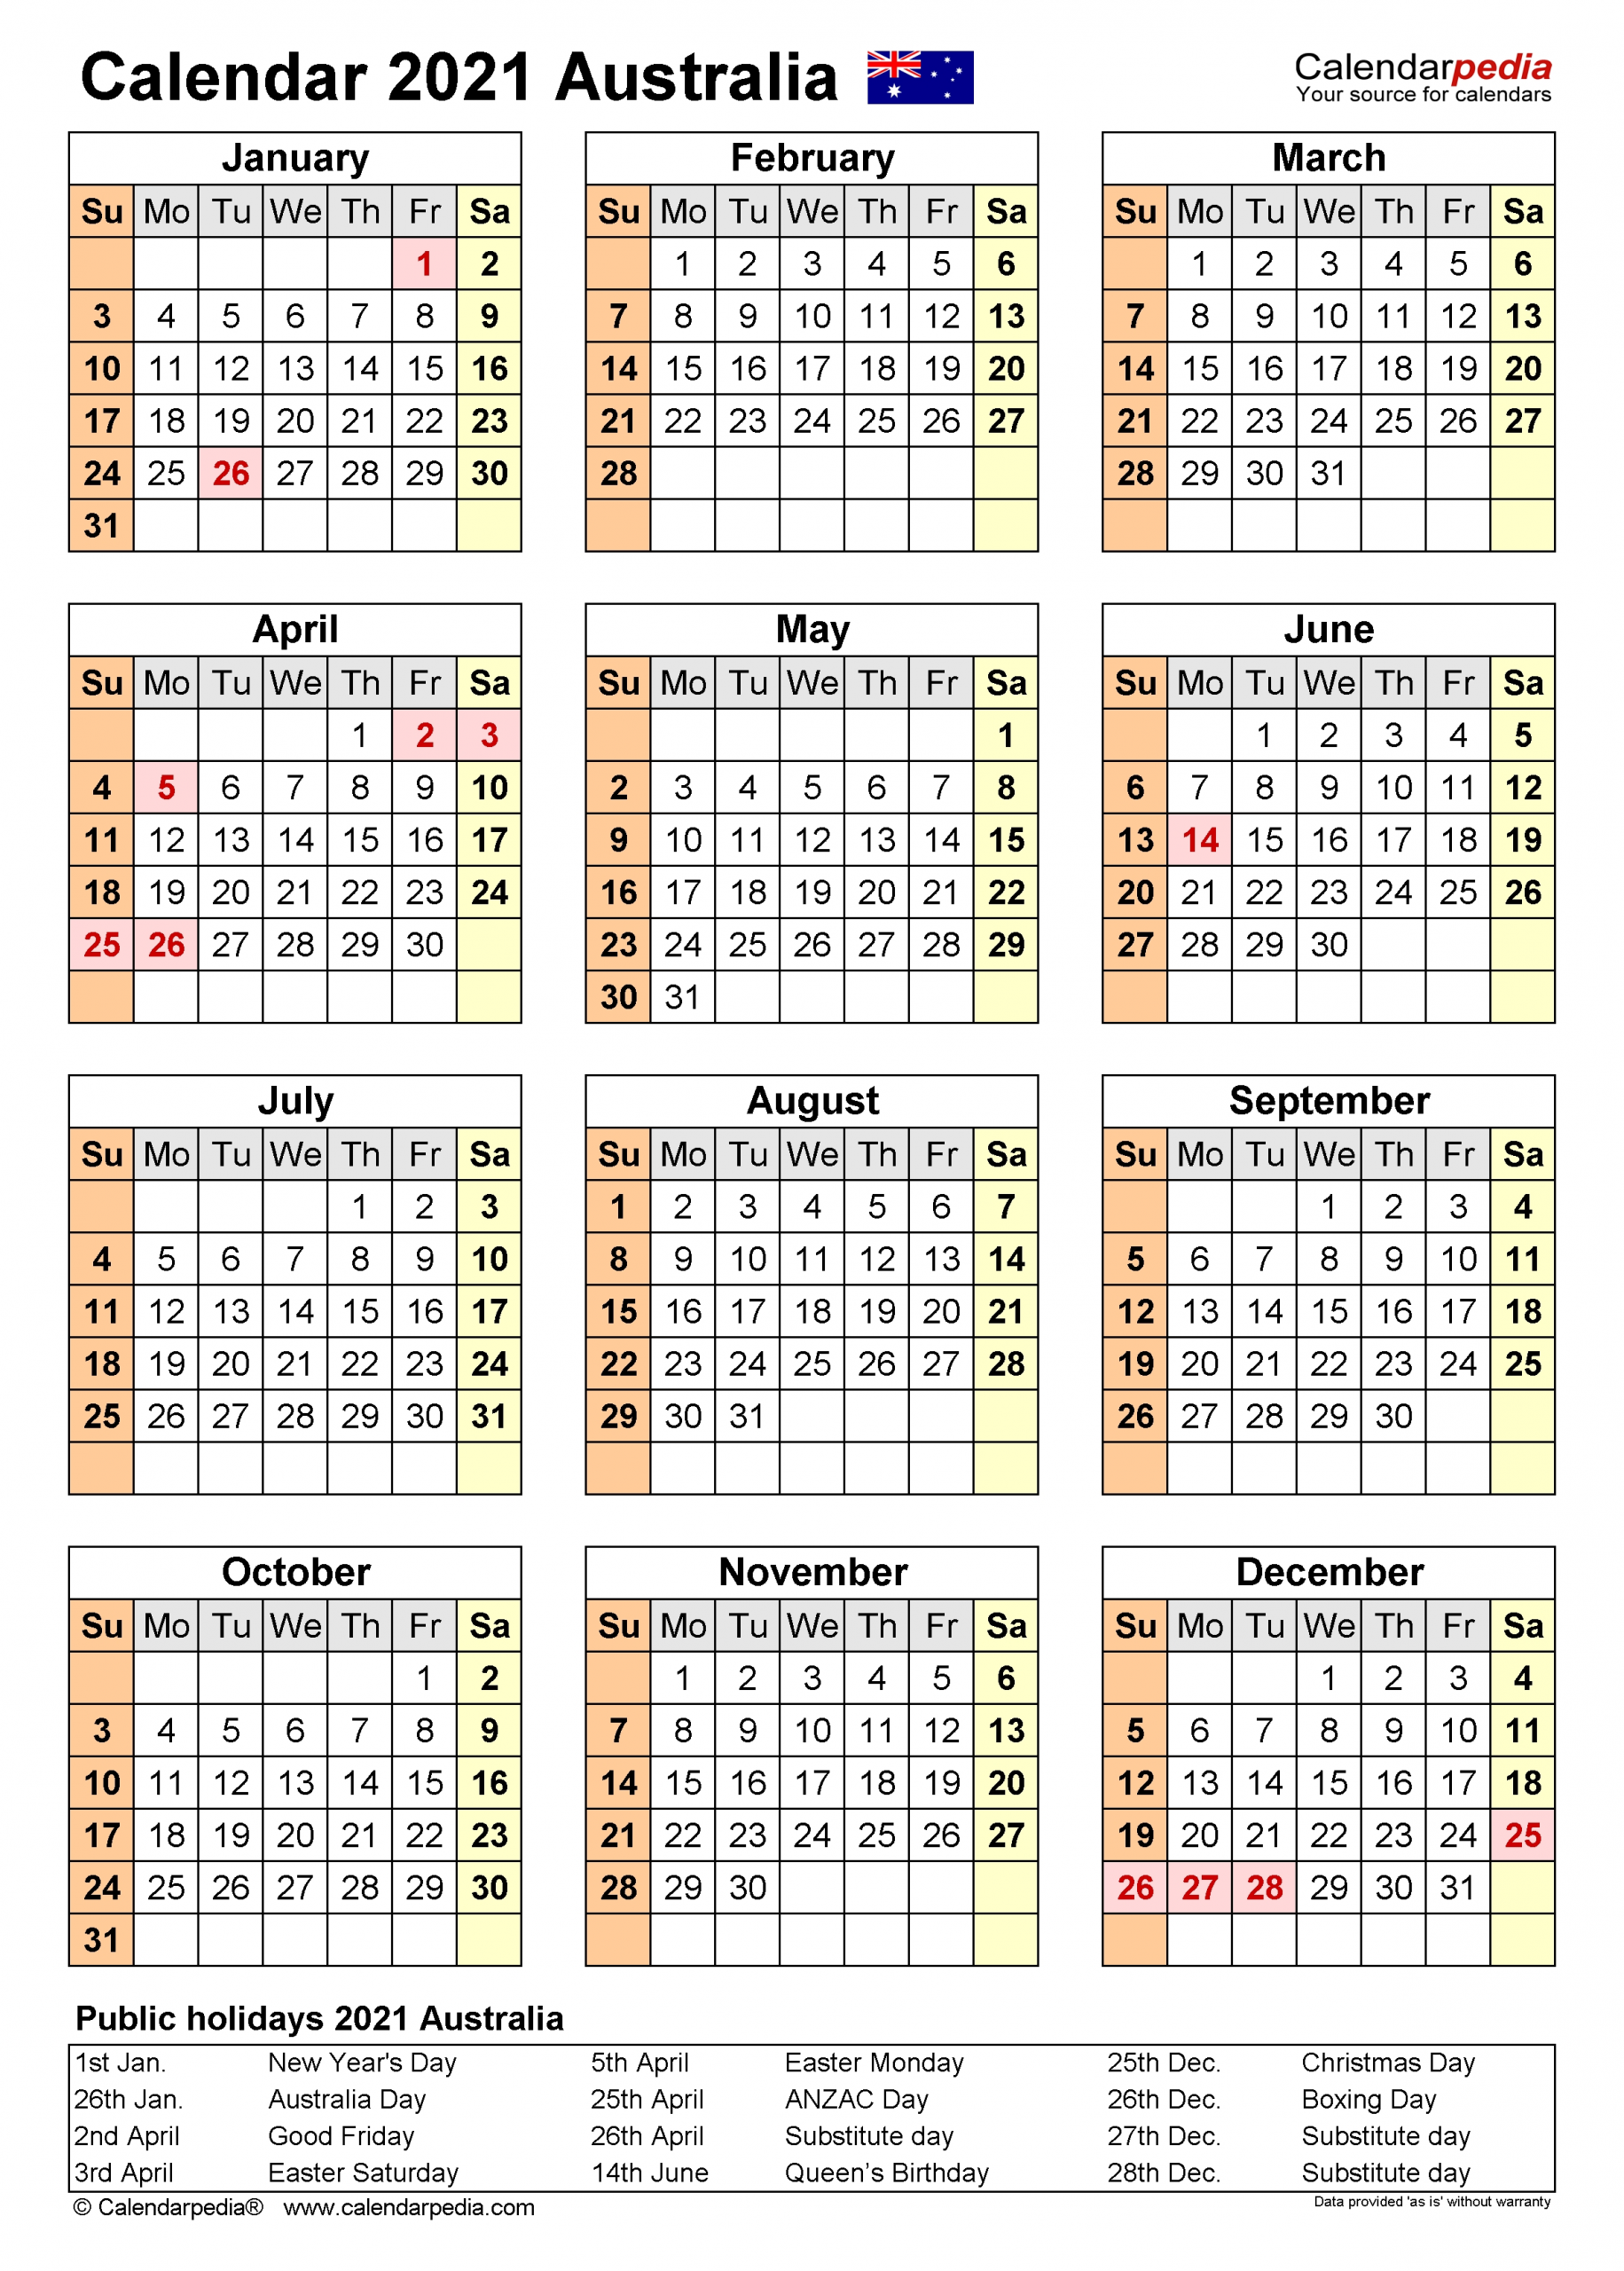 Australia Calendar 2021 - Free Printable Excel Templates  What Financial Year Is It In Australia